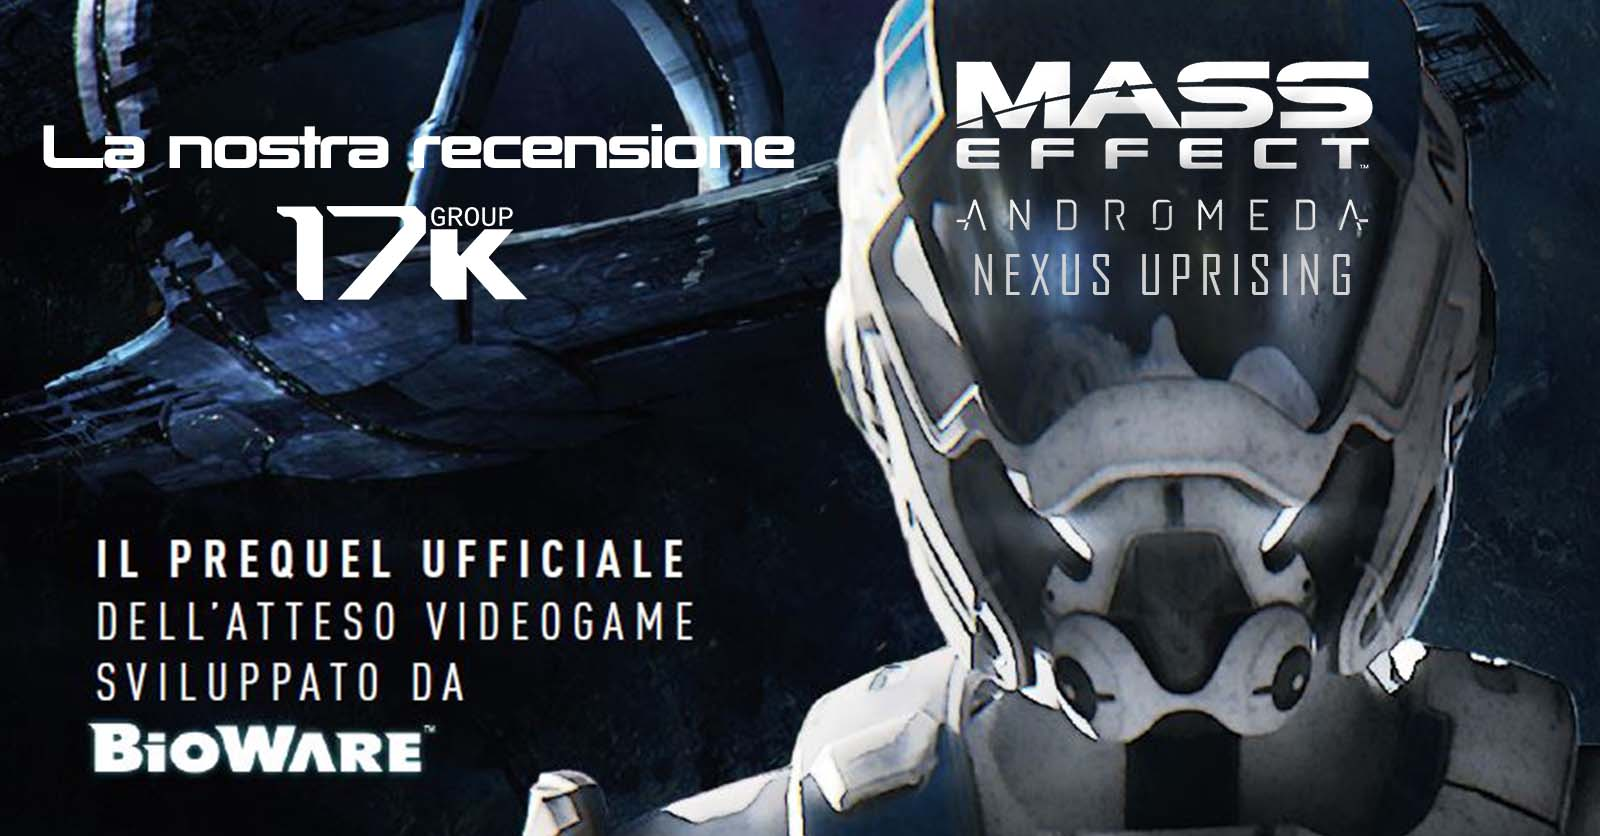 Mass Effect Libros Mass Effect Andromeda Nexus Uprising Recensione 17k Group